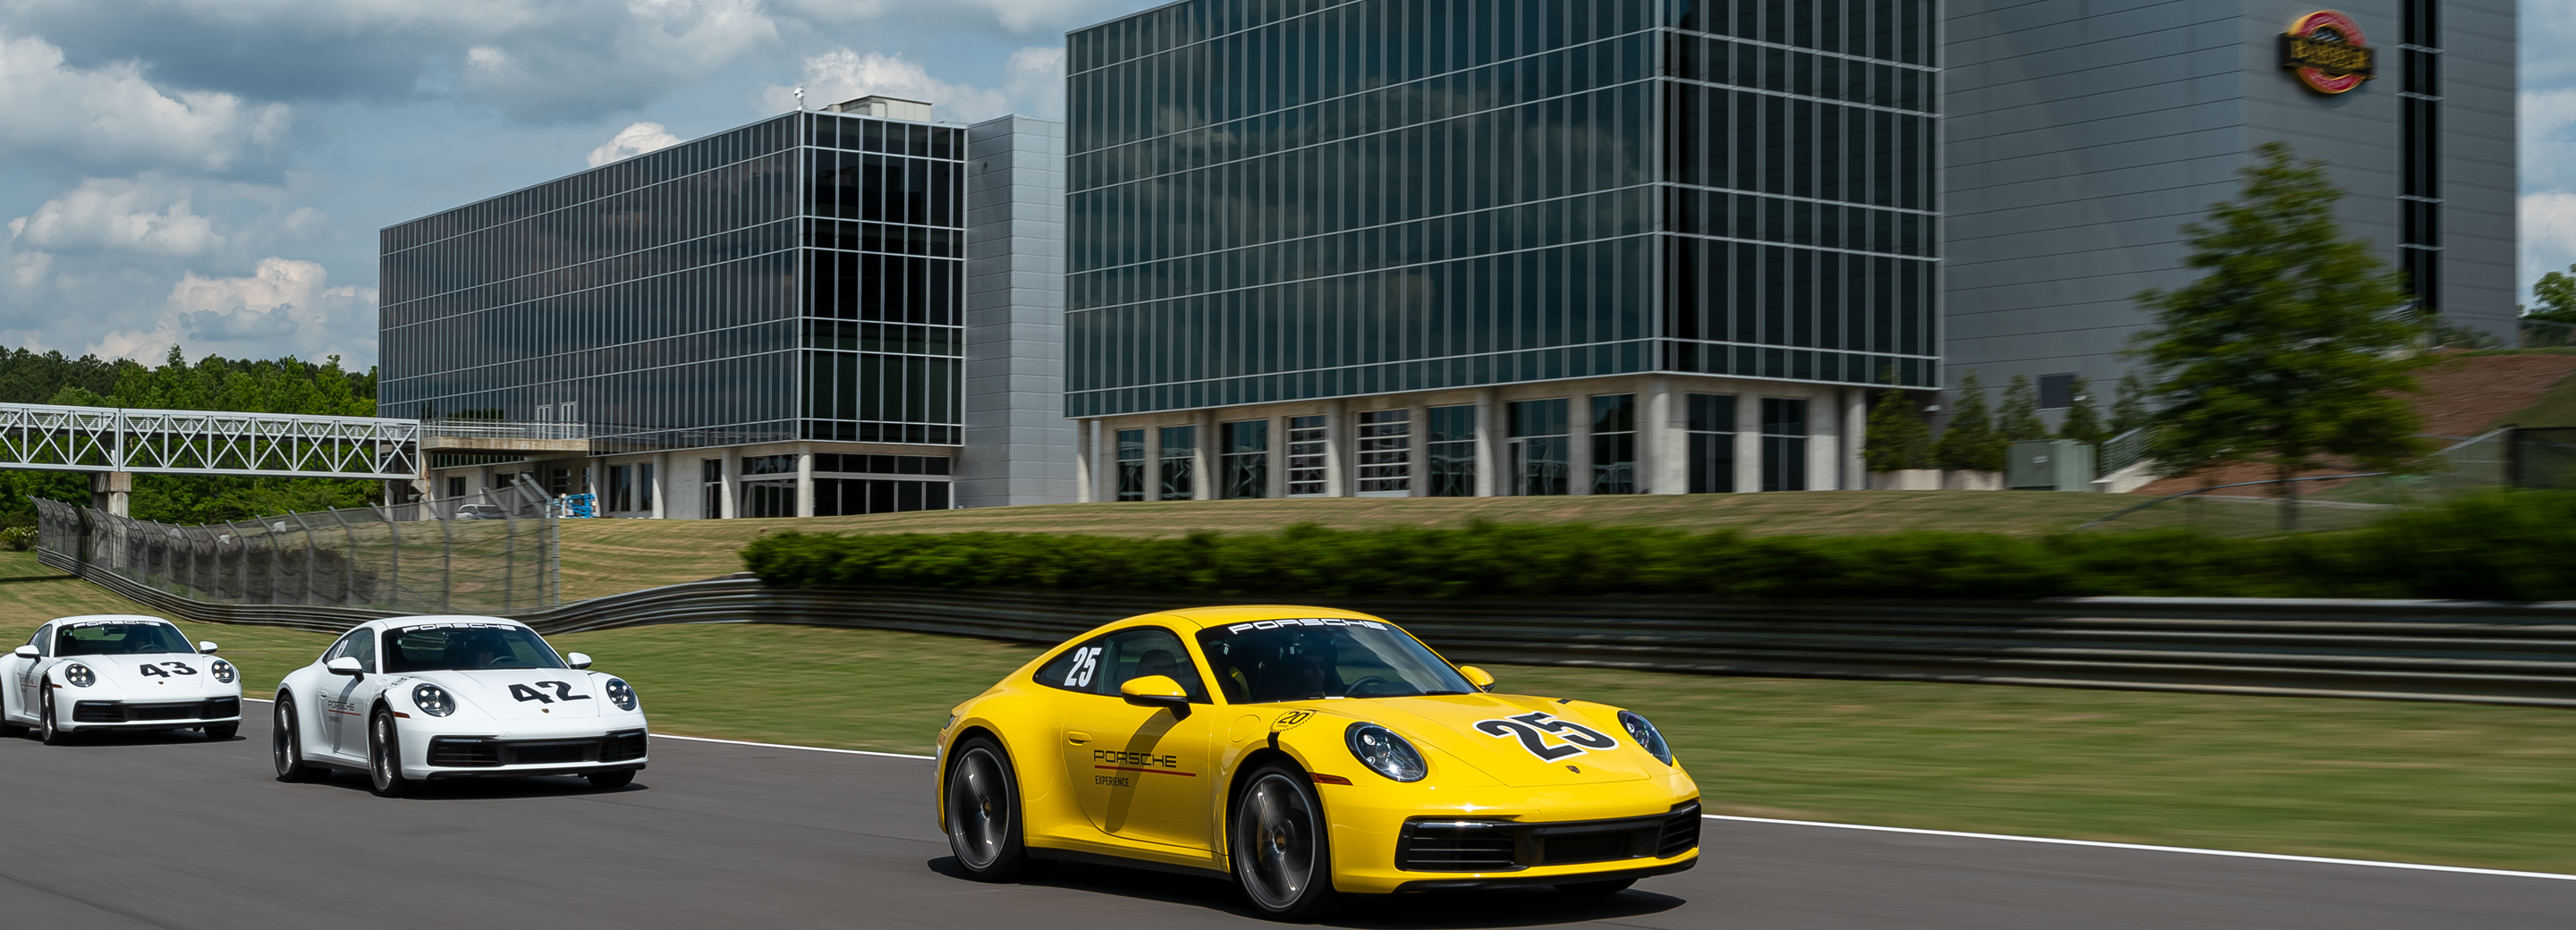 Courses Overview Header image - White Porsche on track